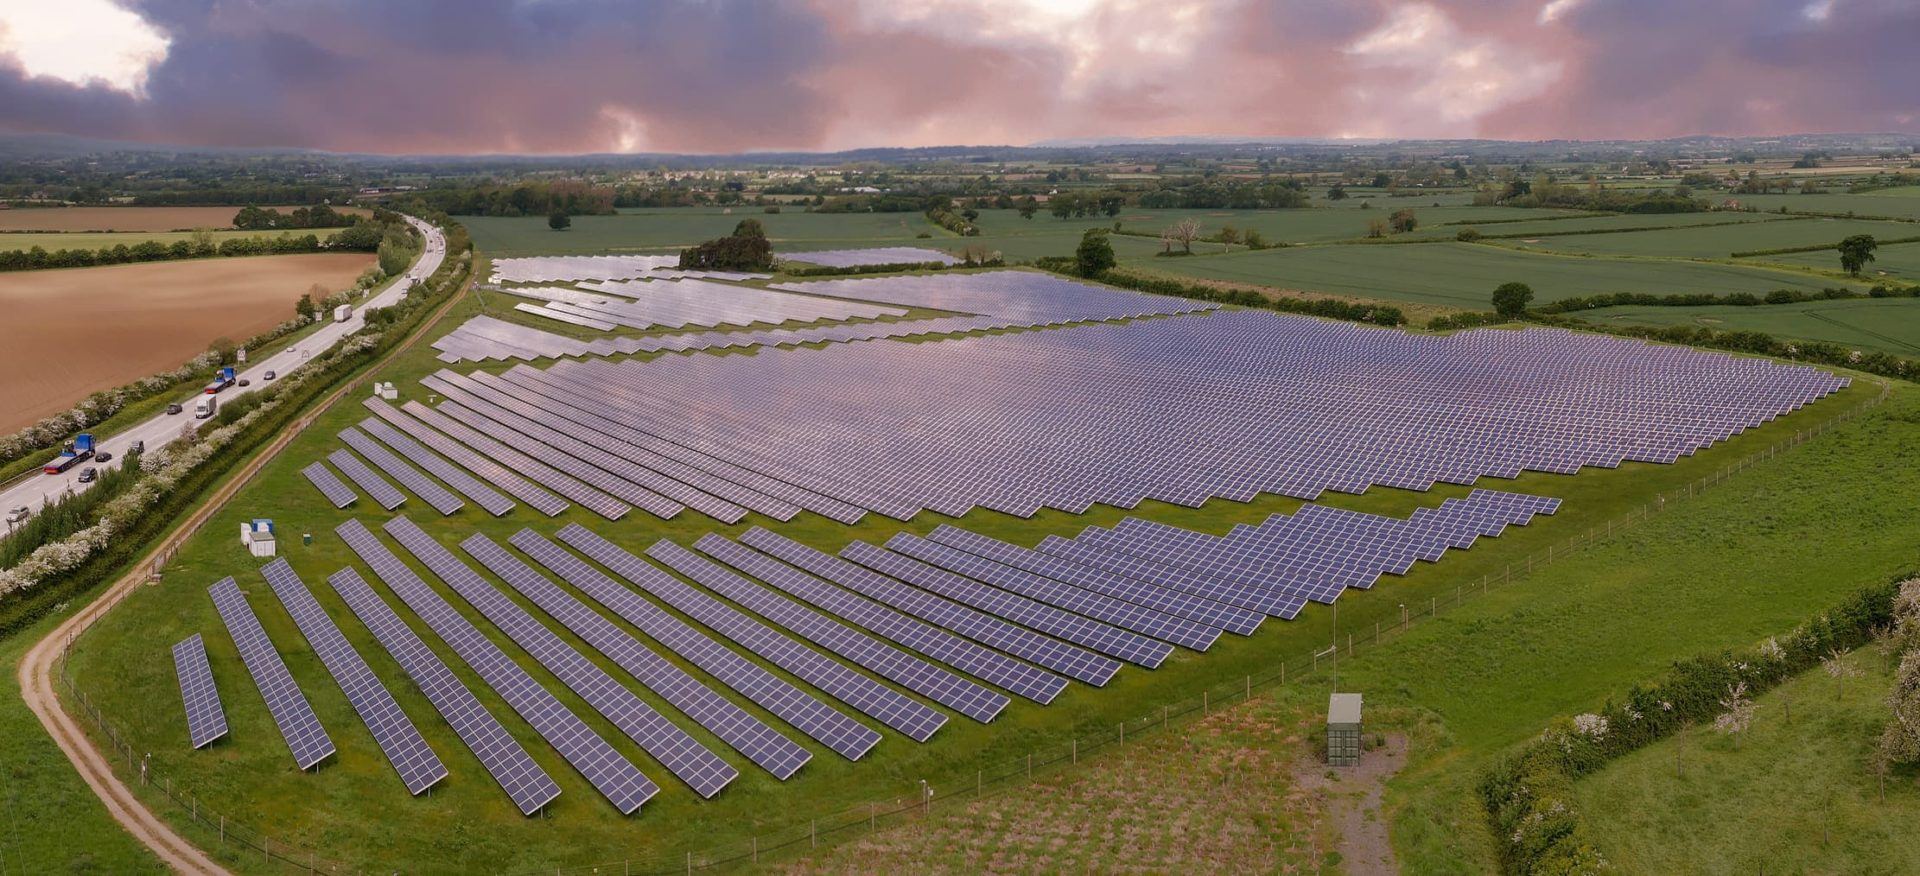 Luftaufnahme der Solaranlage Dillington Estate in Hurcott, United Kingdom